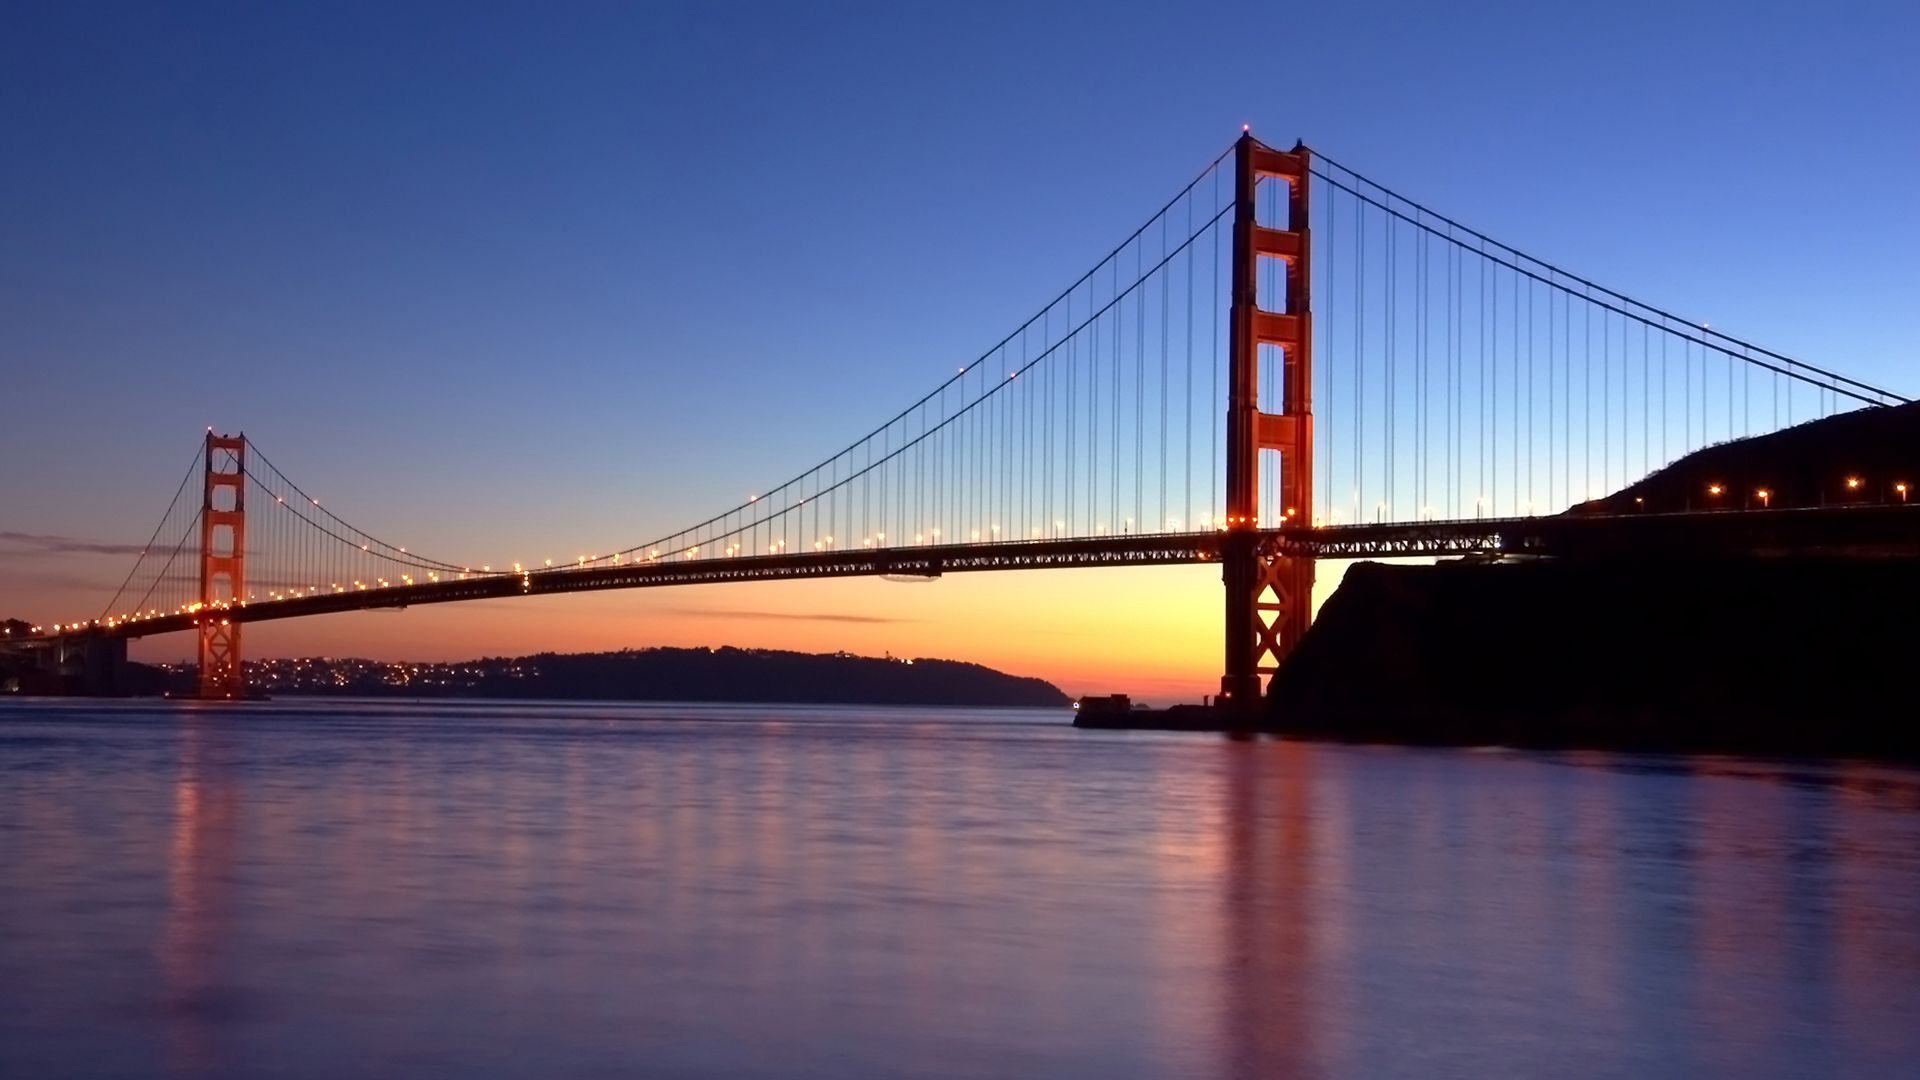 Pin By Manuel Marquez On Pc Wallpapers Golden Gate Bridge